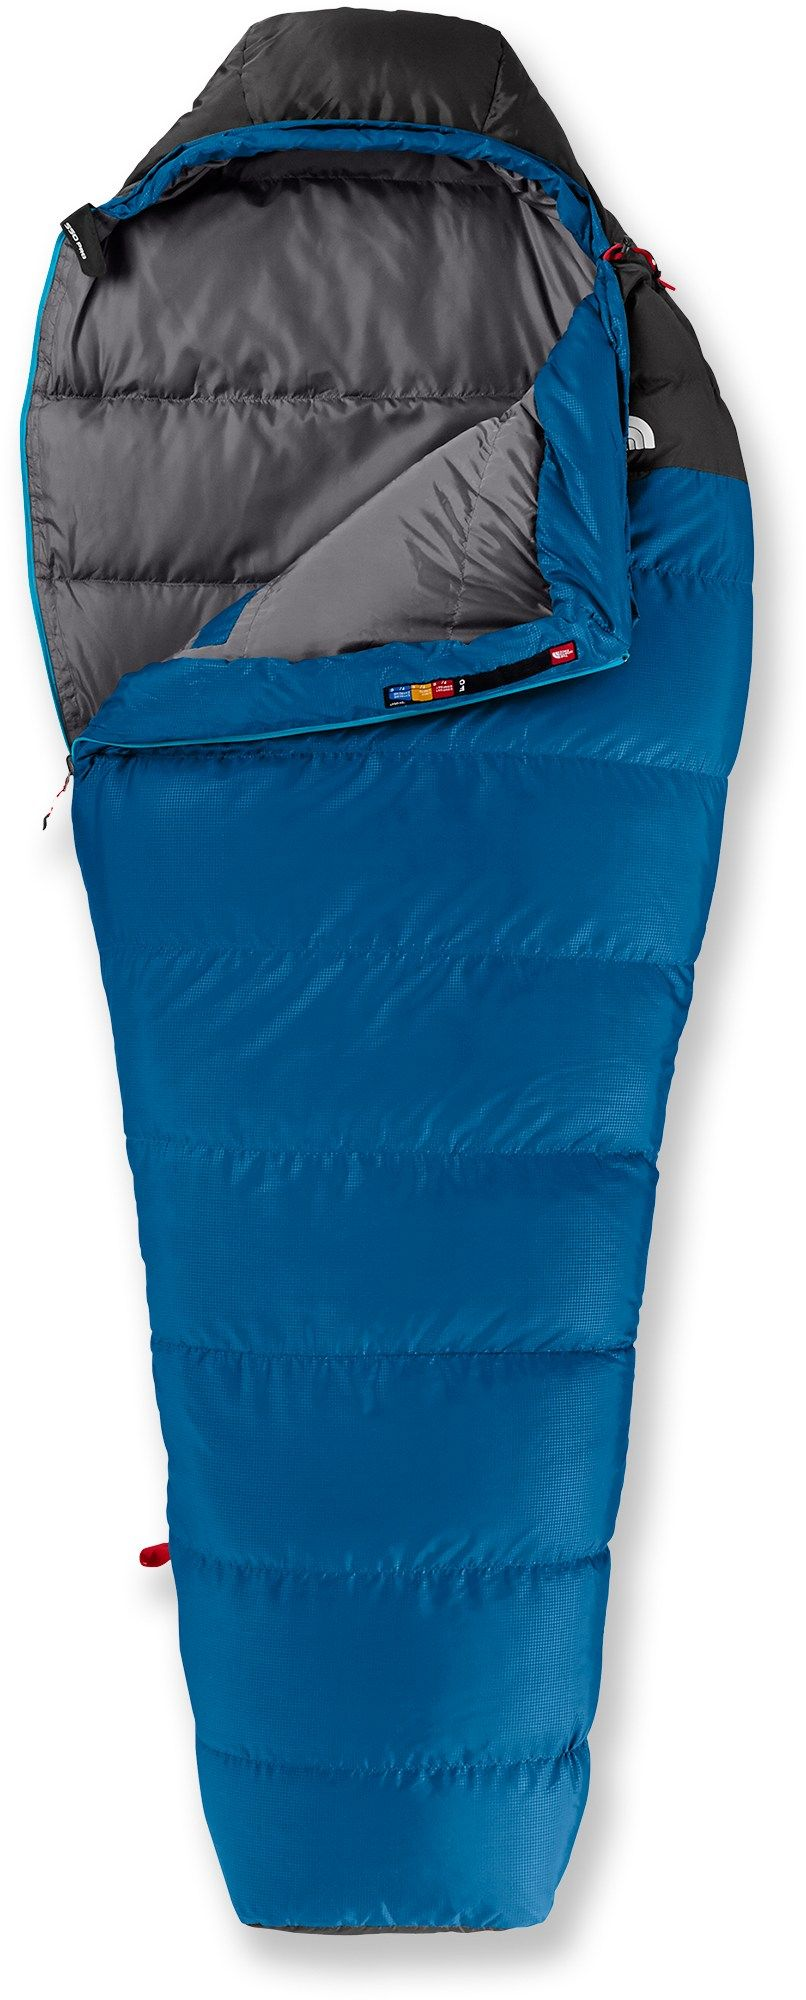 The North Face Furnace 20 Sleeping Bag 179 Note May Get Cold At 30 Degrees Doesn T Quite Reach Compression Sack For This